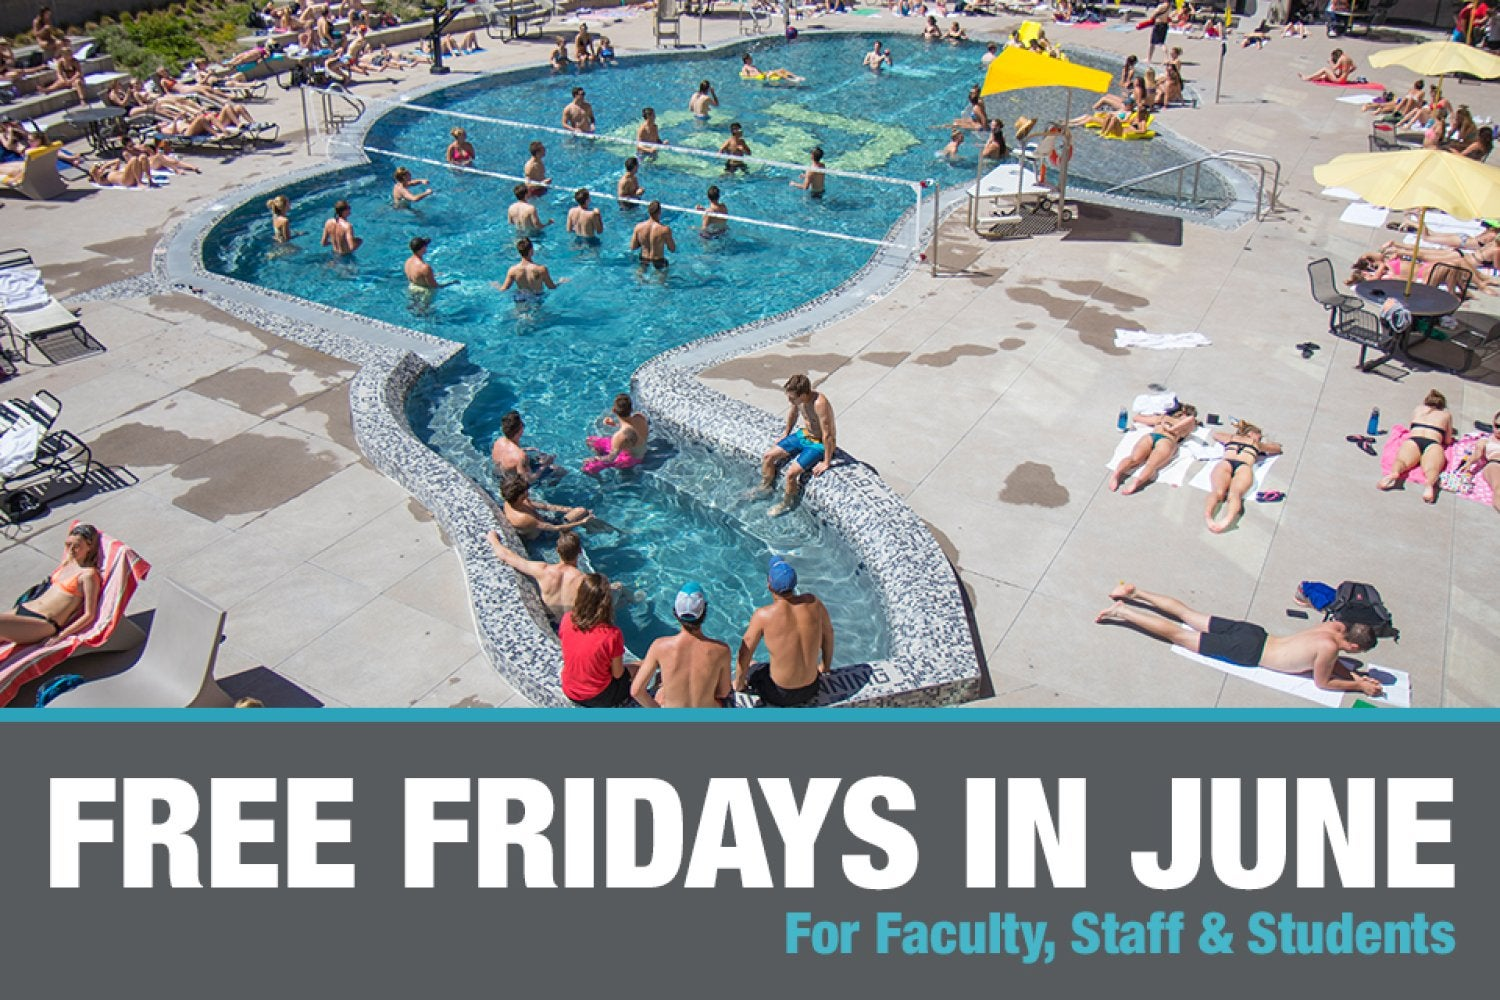 Free fridays in June for students, faculty, and staff.  click for more information